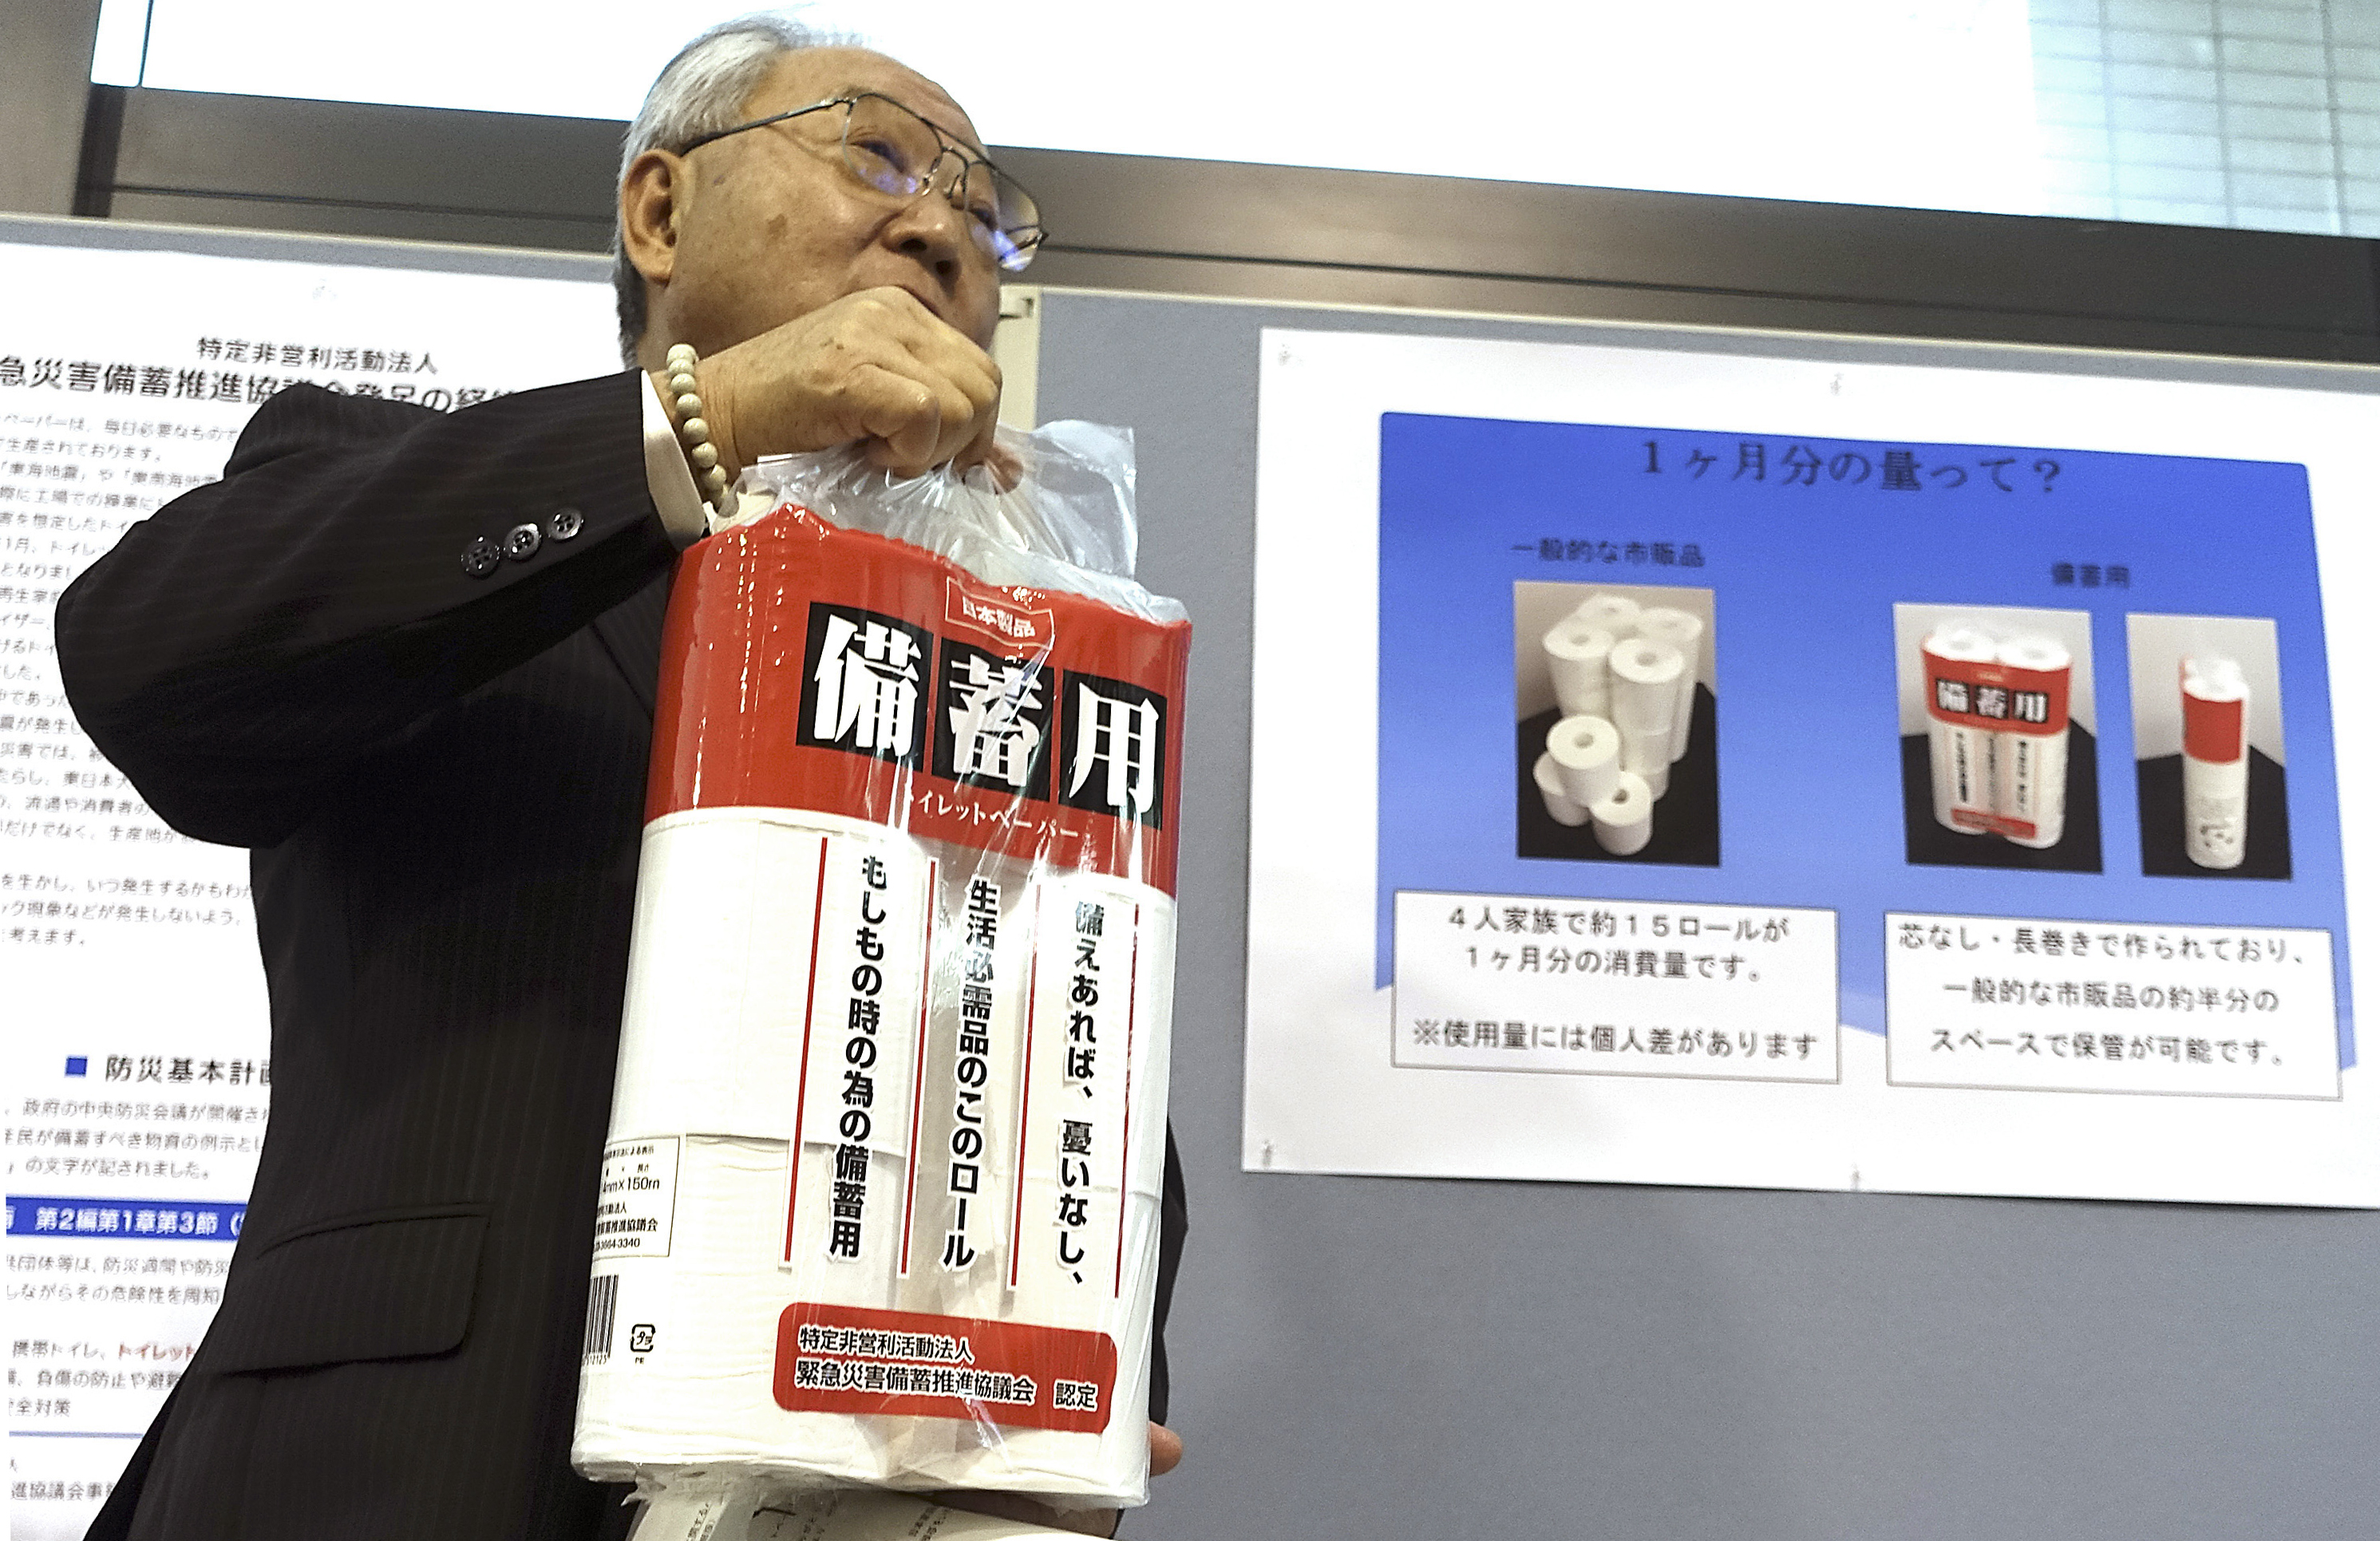 Tokyo - Japan Rolls Out Campaign To Stockpile Toilet Paper